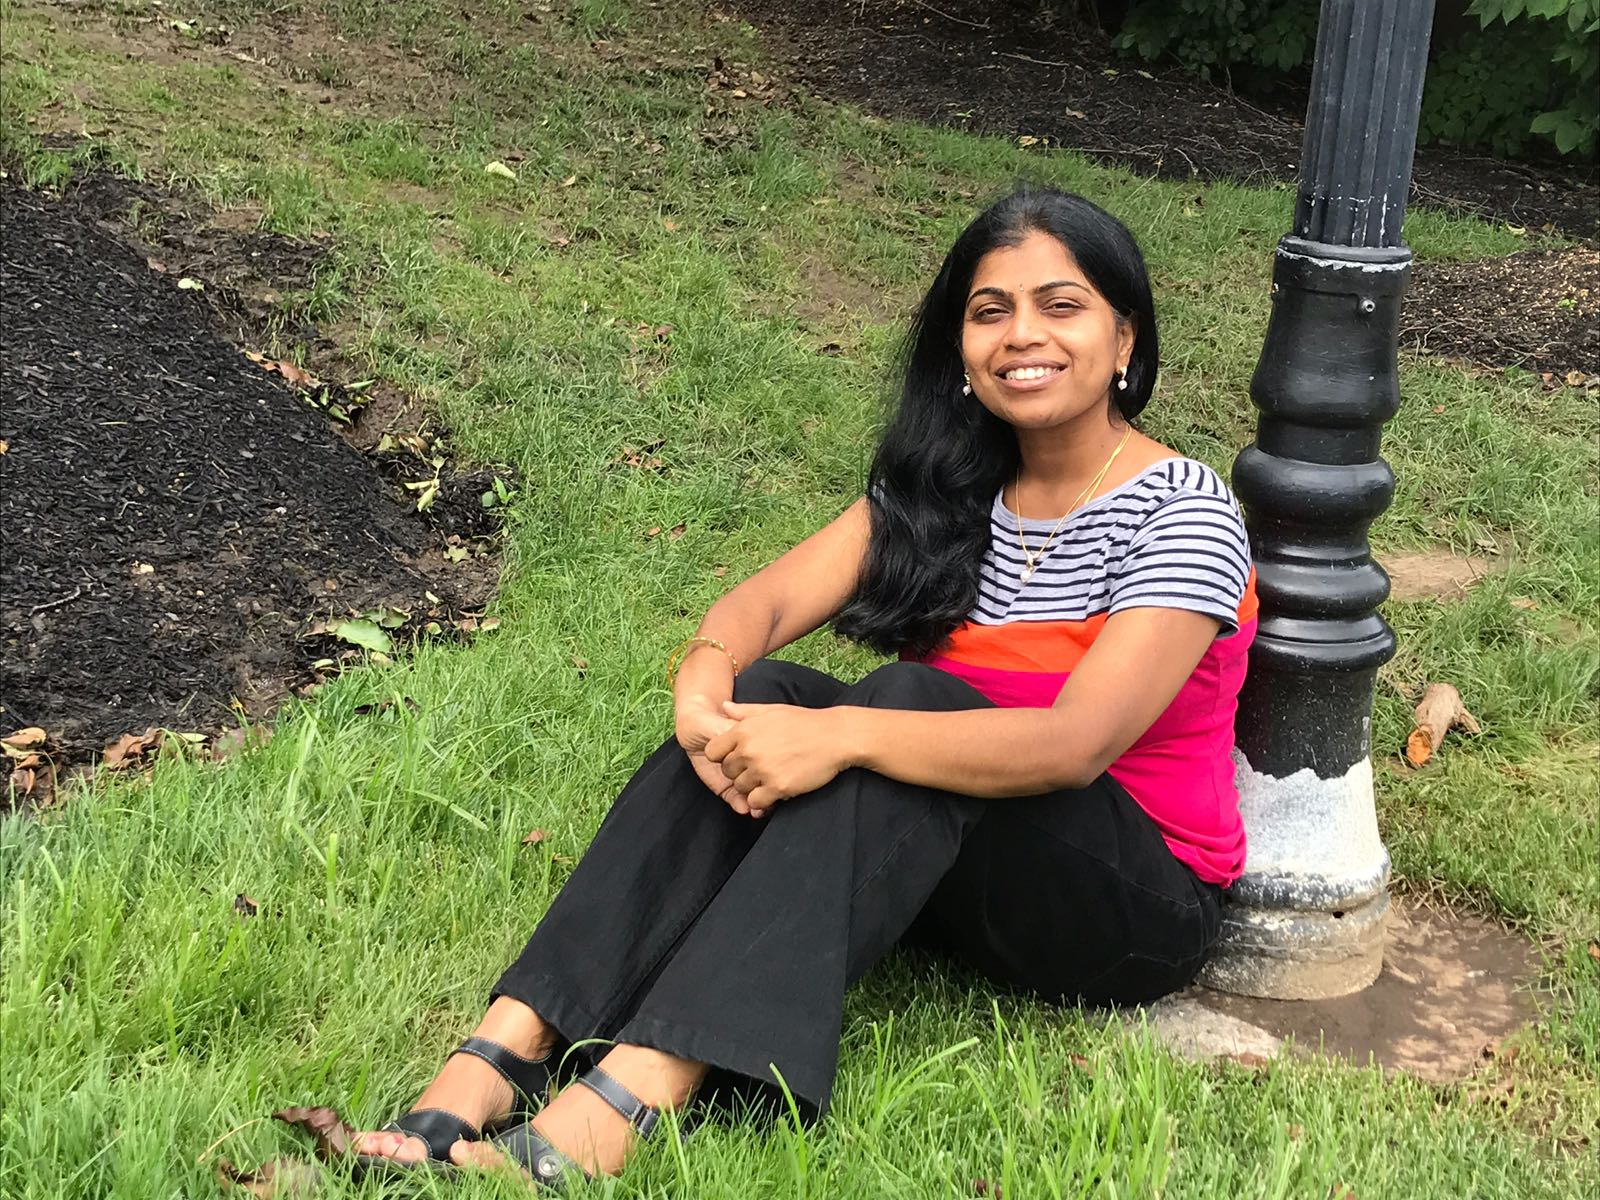 Srividhya Sundaram sitting on the grass at the based of a light pole